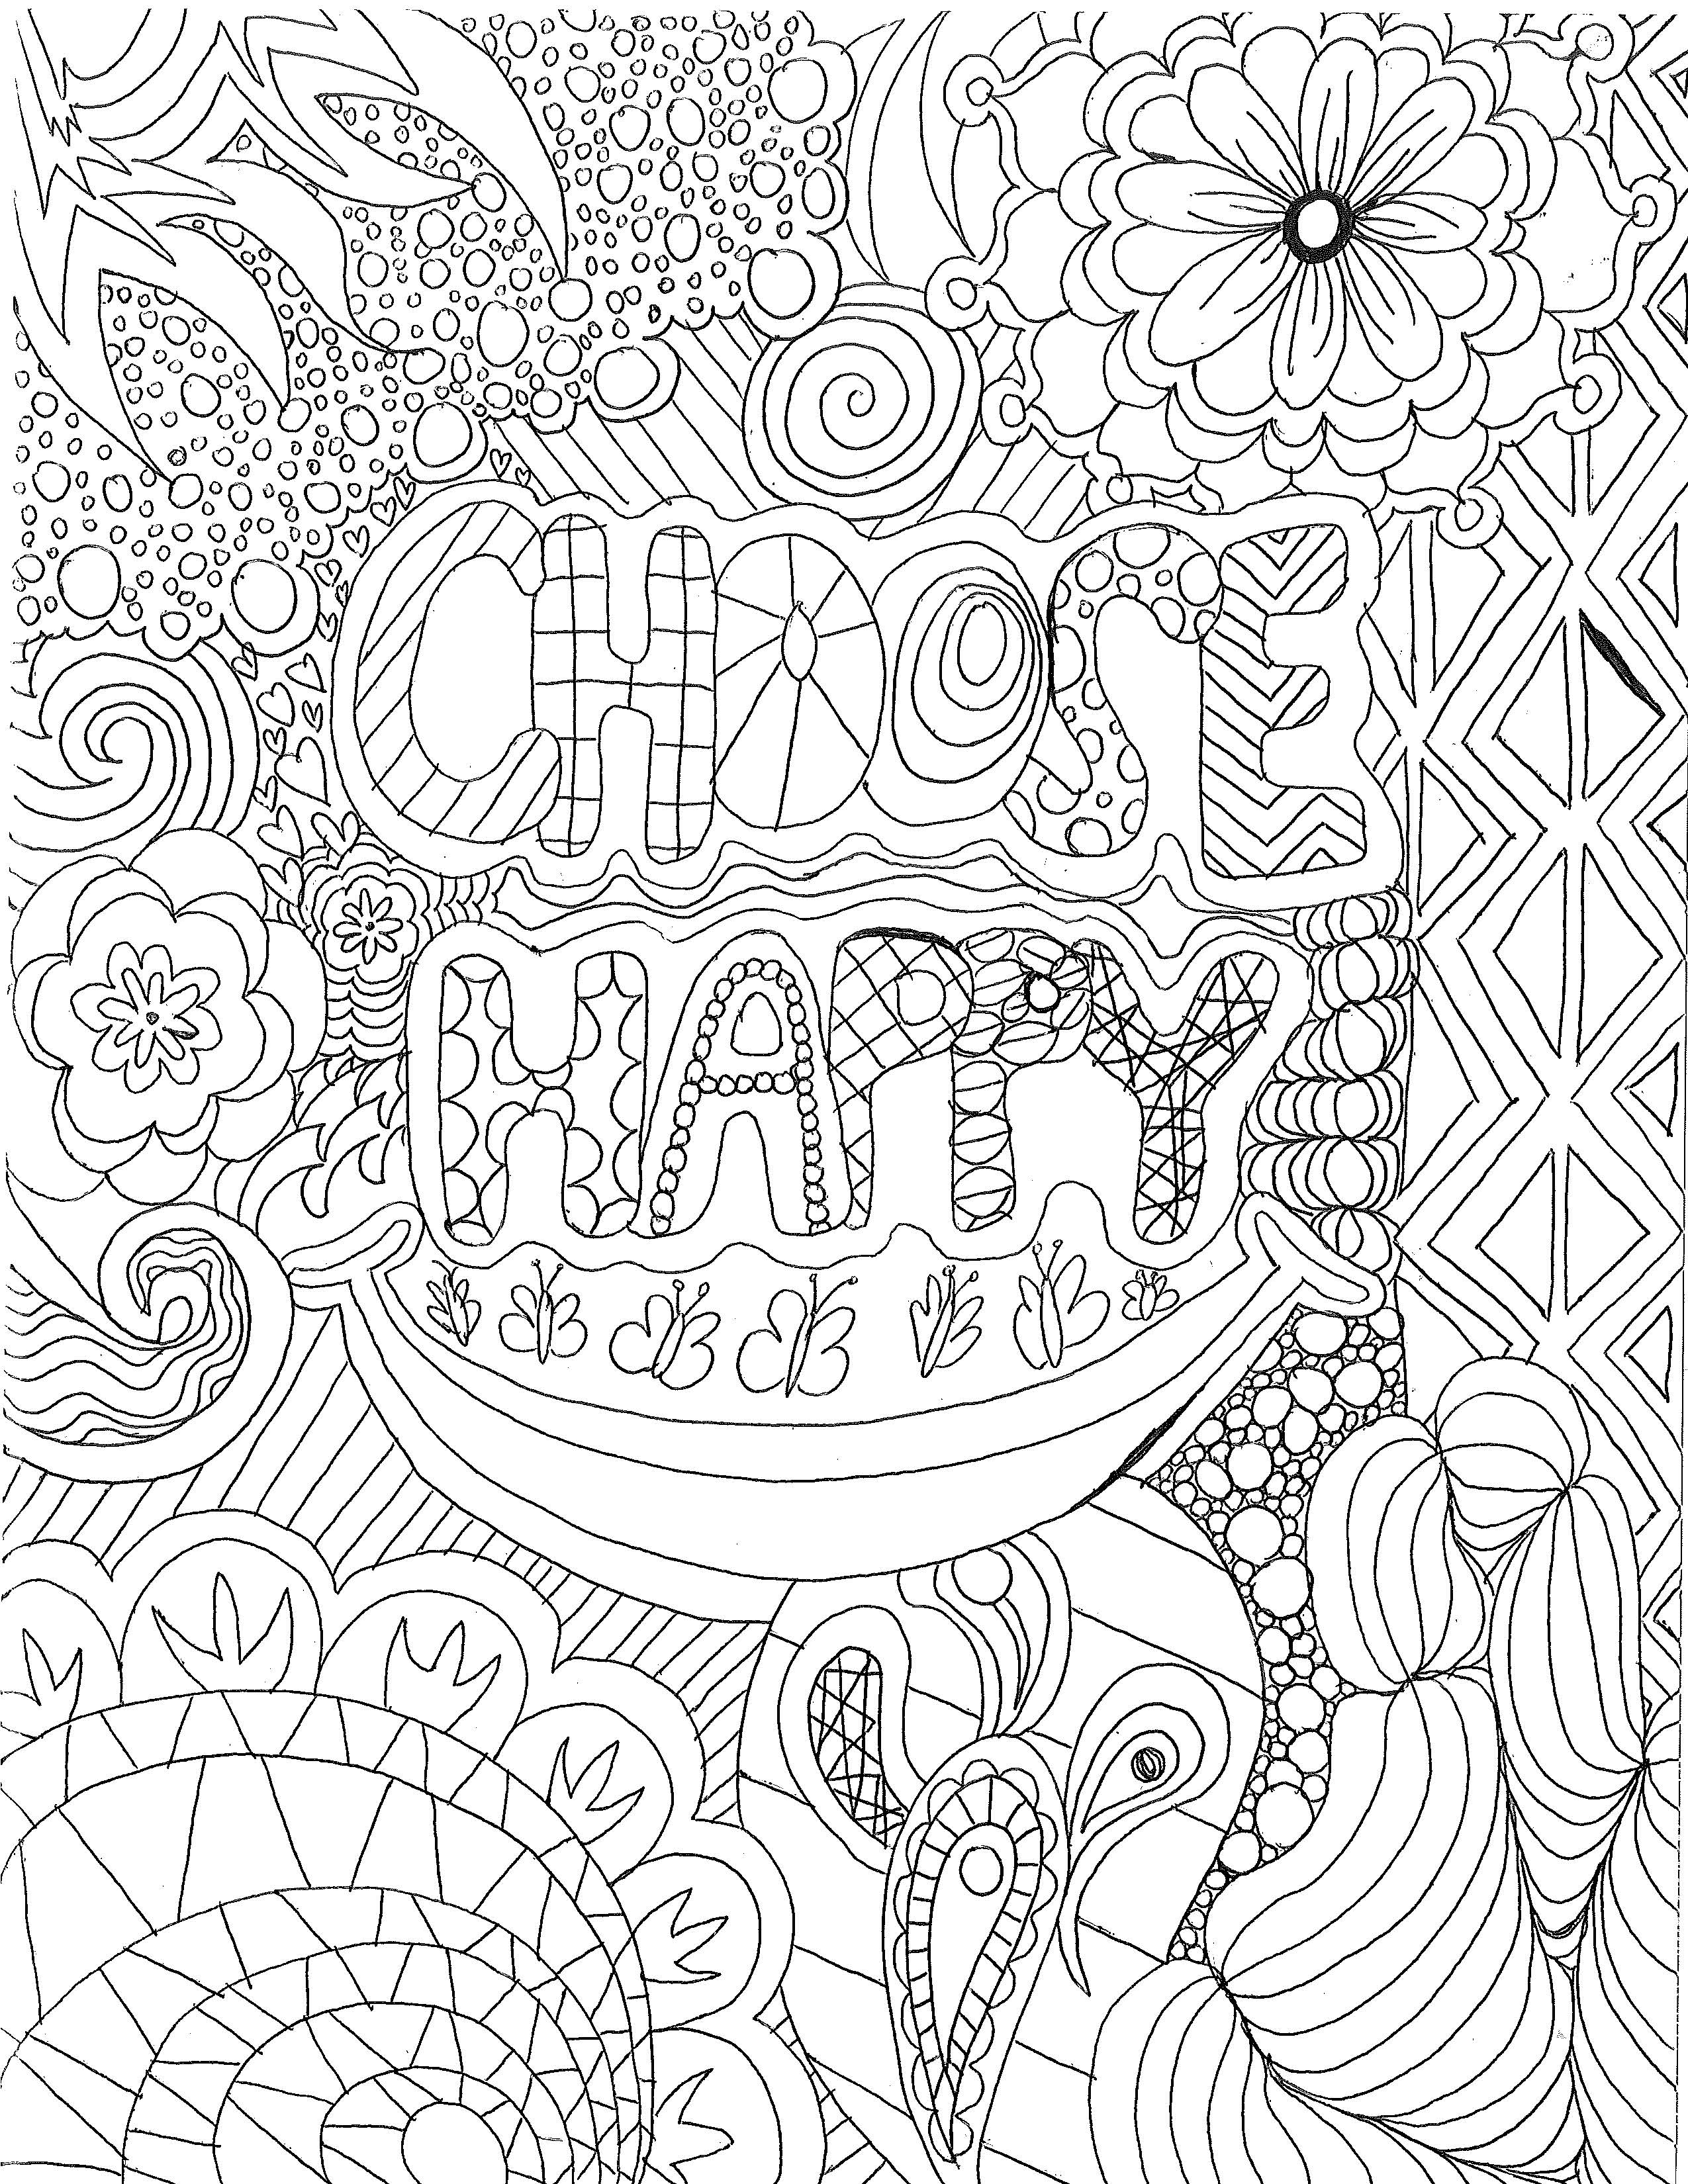 Coloring Pages | Counseling Service | Luther College